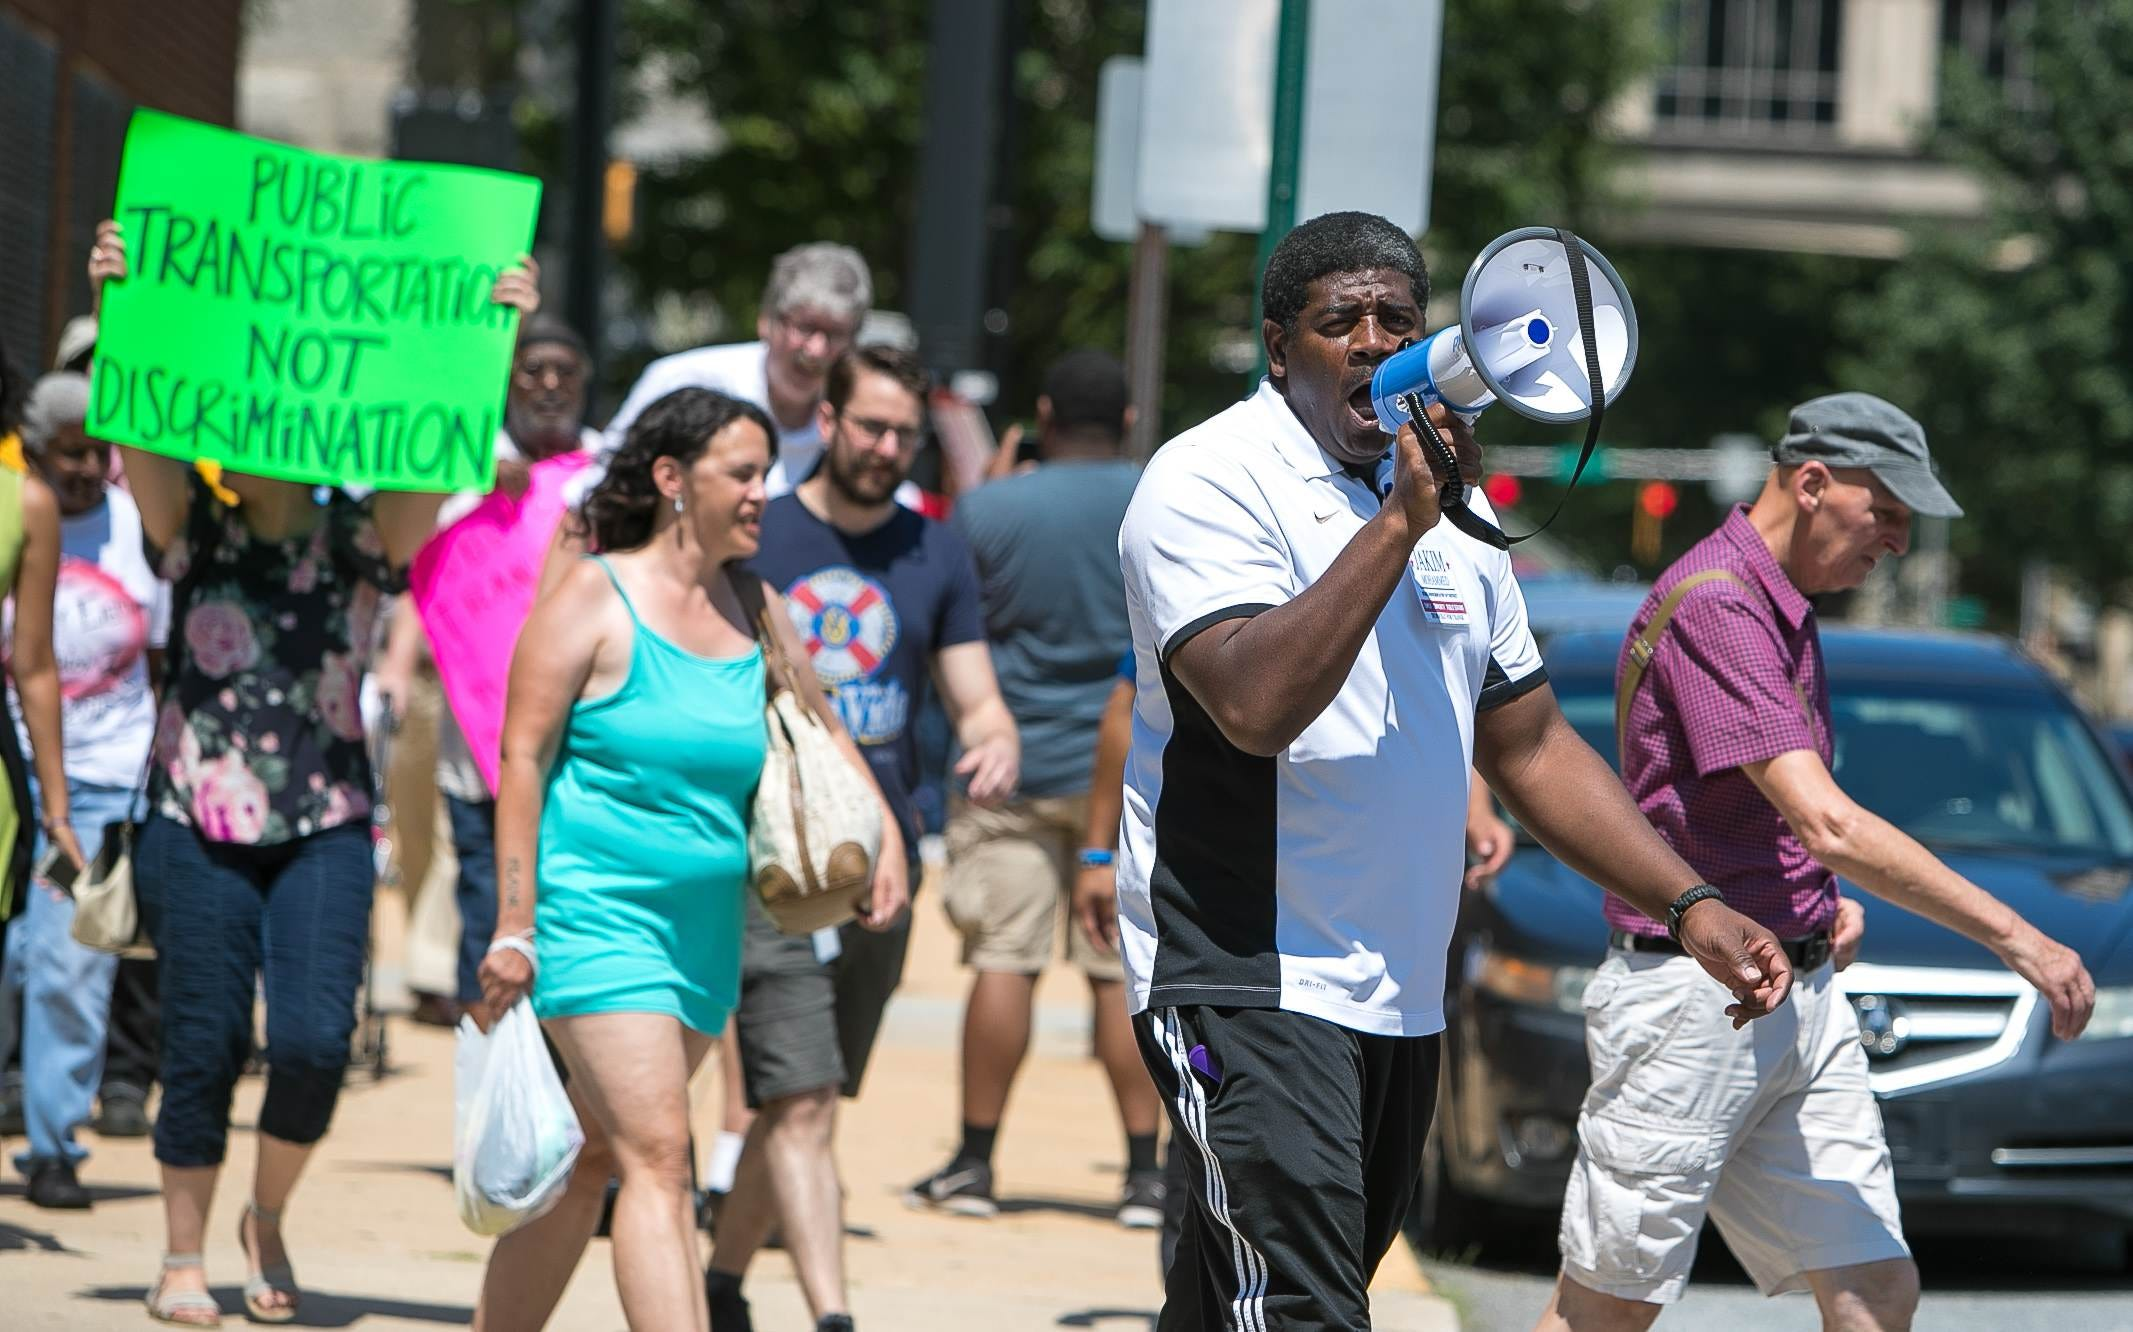 Rodney Square bus hub advocates march to governor's office, demand action